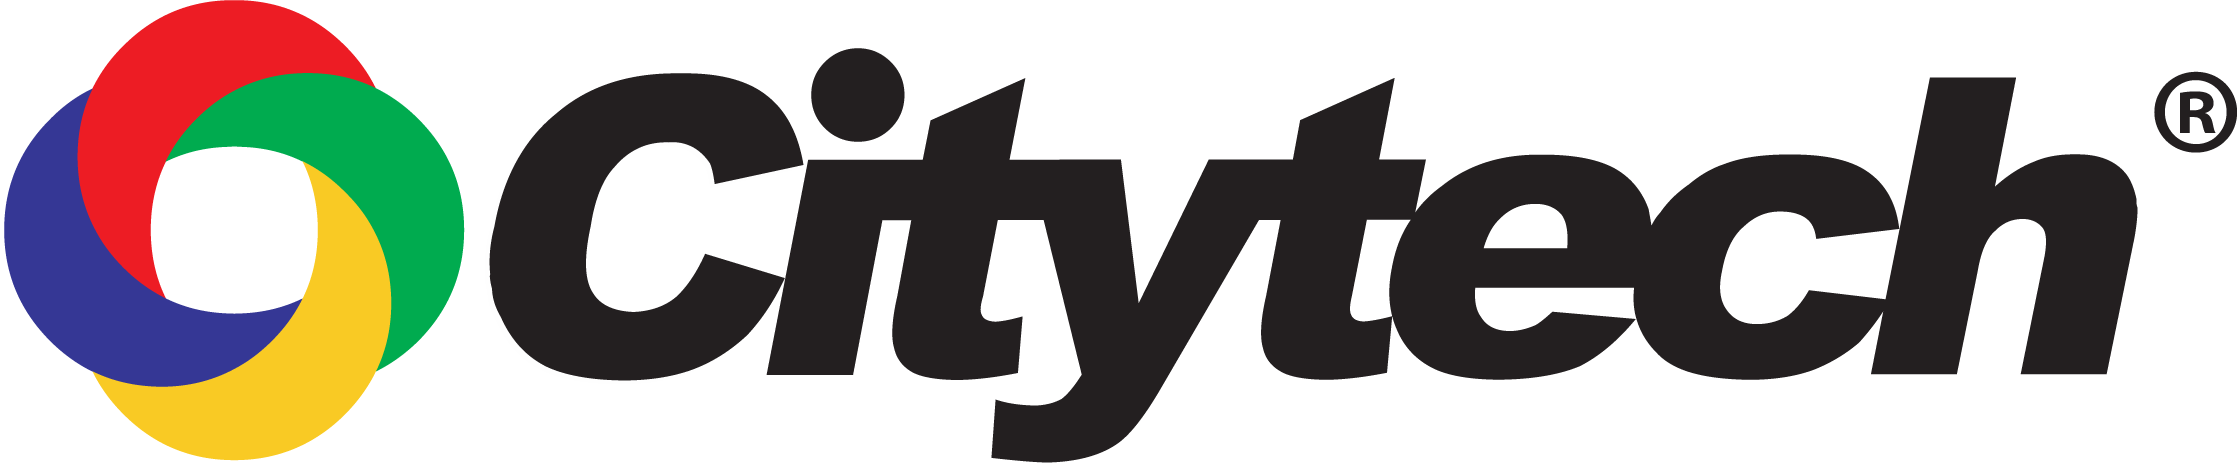 Citytech Software Pvt. Ltd. Logo